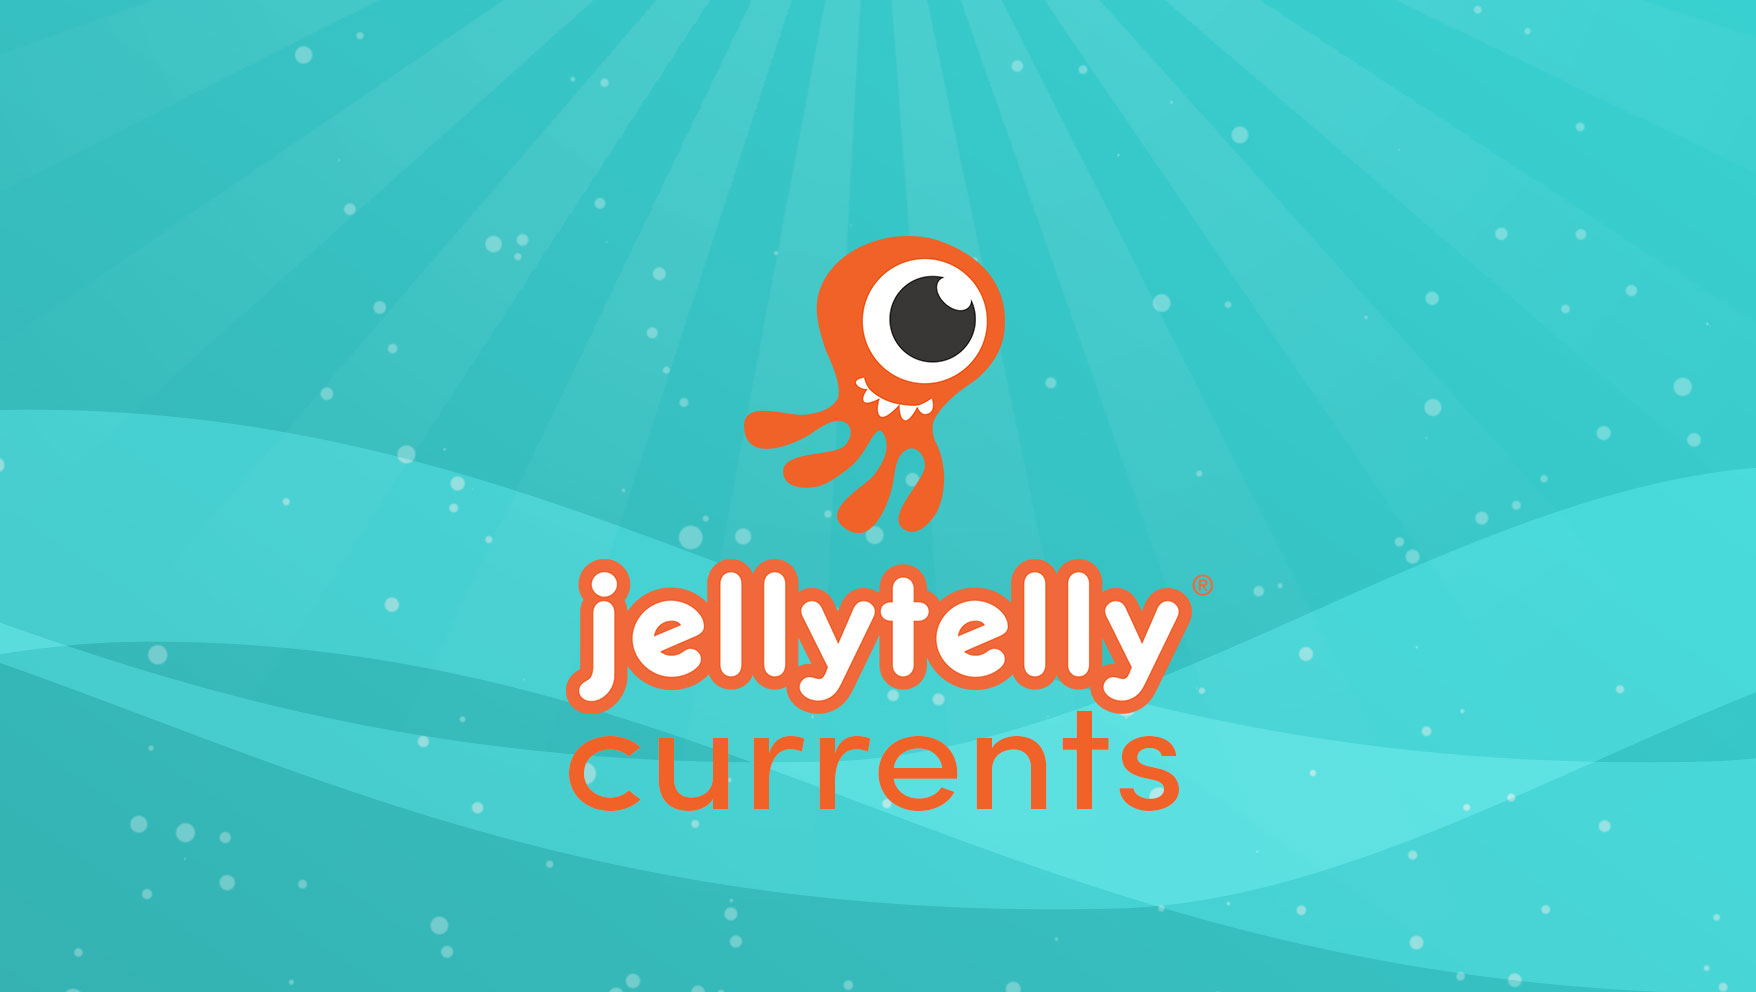 JellyTelly Currents 1/13/17